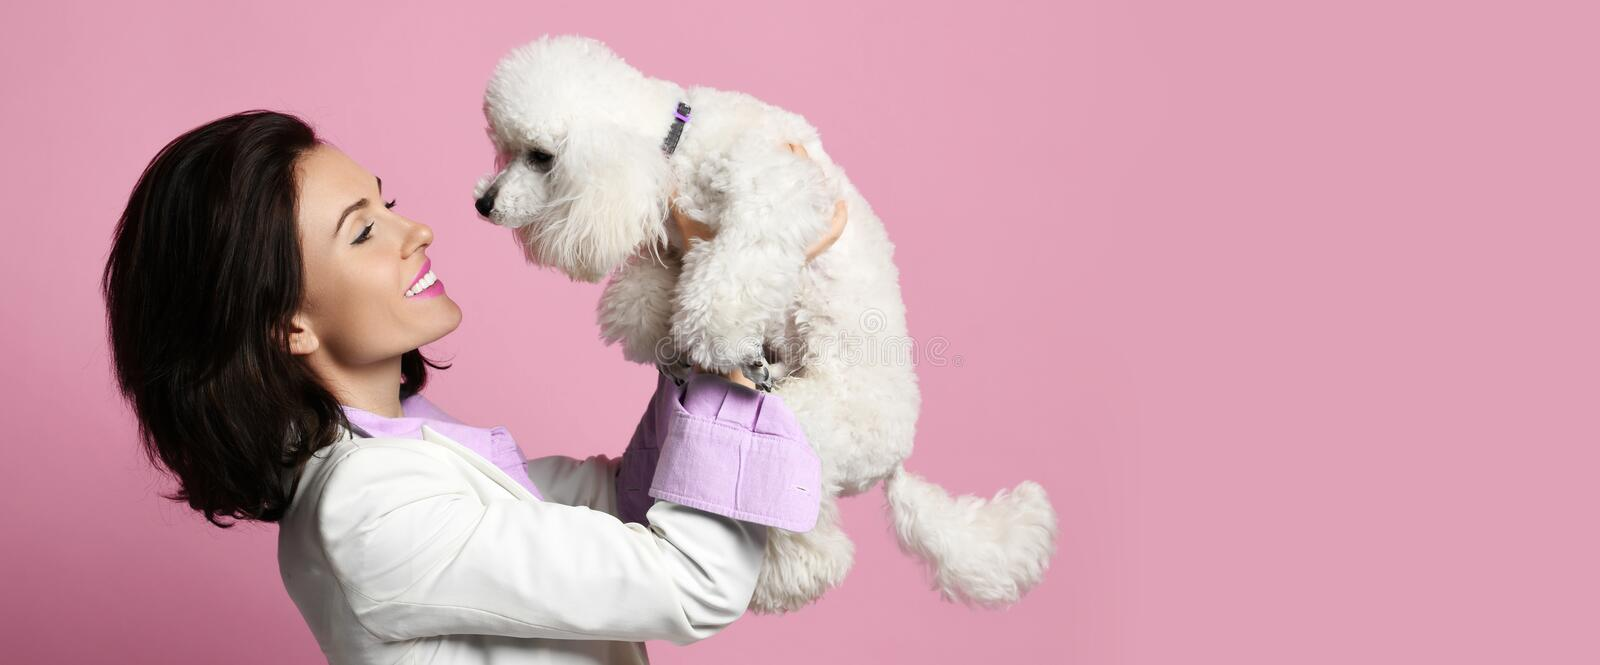 Beautiful woman hugging her lovely white poodle dog puppy on pink happy smiling royalty free stock photography